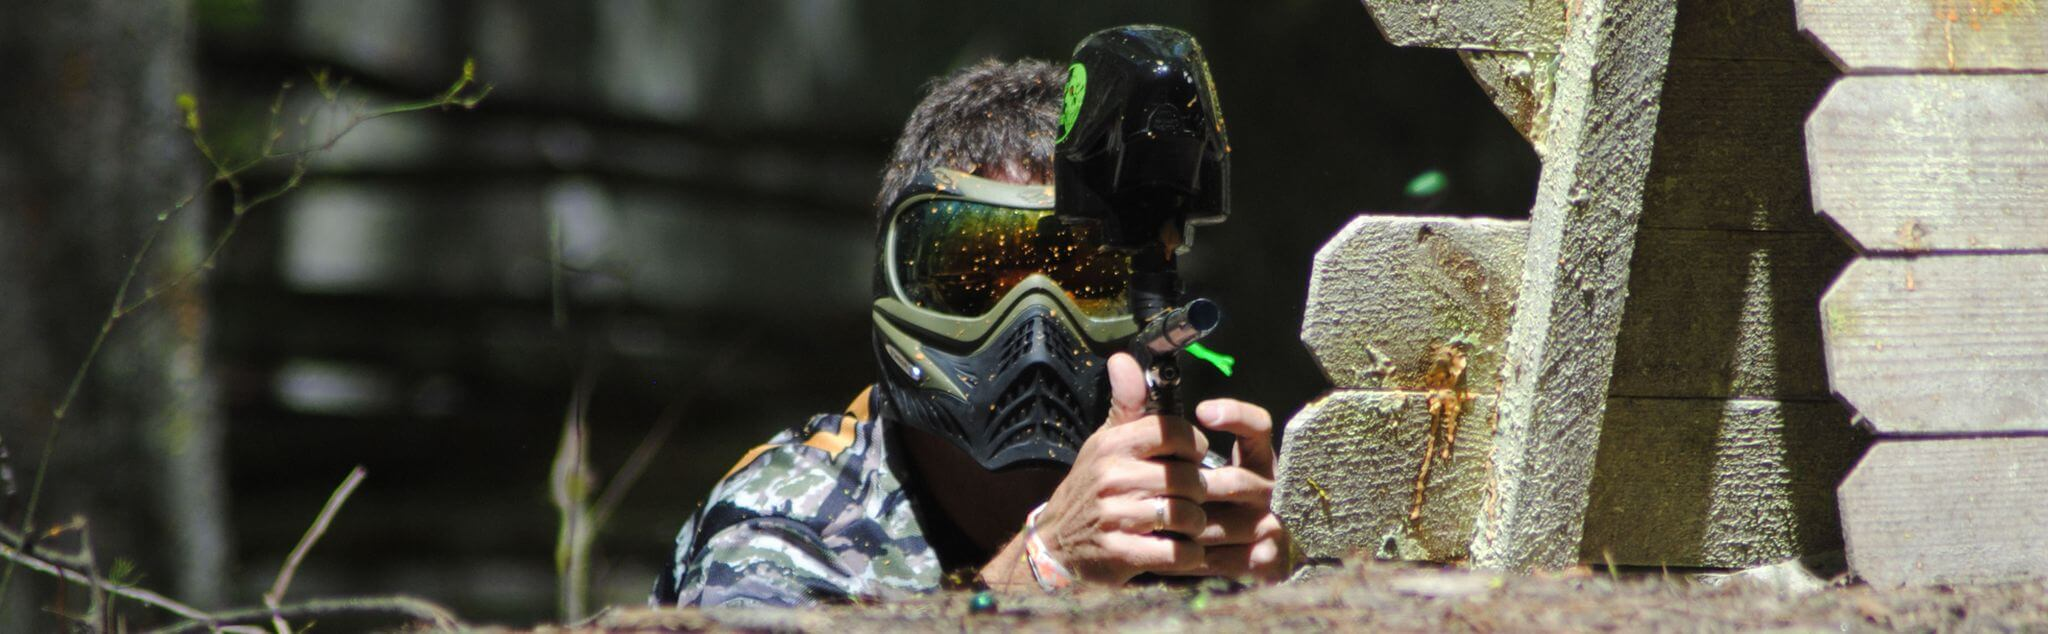 Paintball a Preseglie